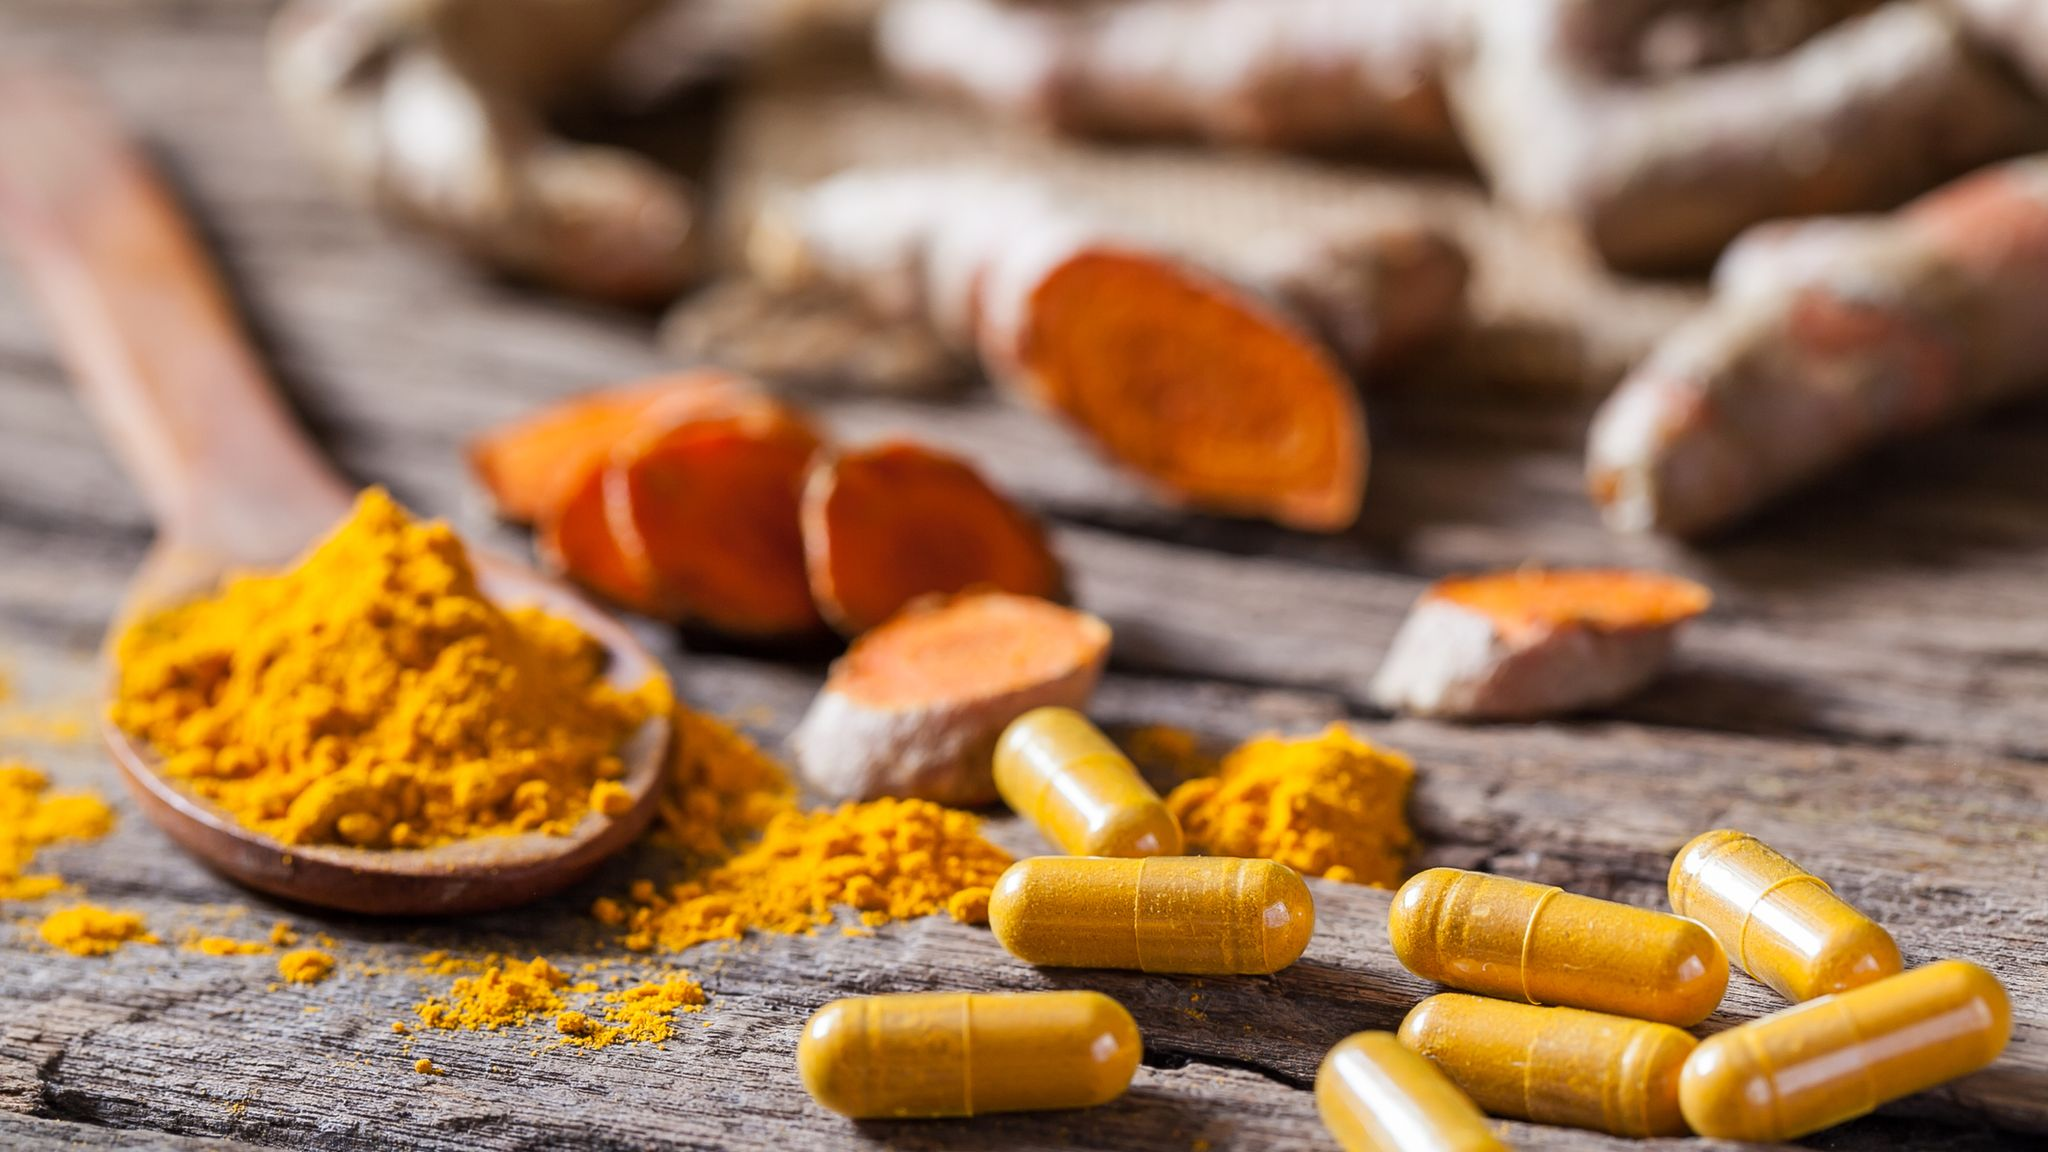 Herbal remedies interfere with cancer treatment, leading surgeon says